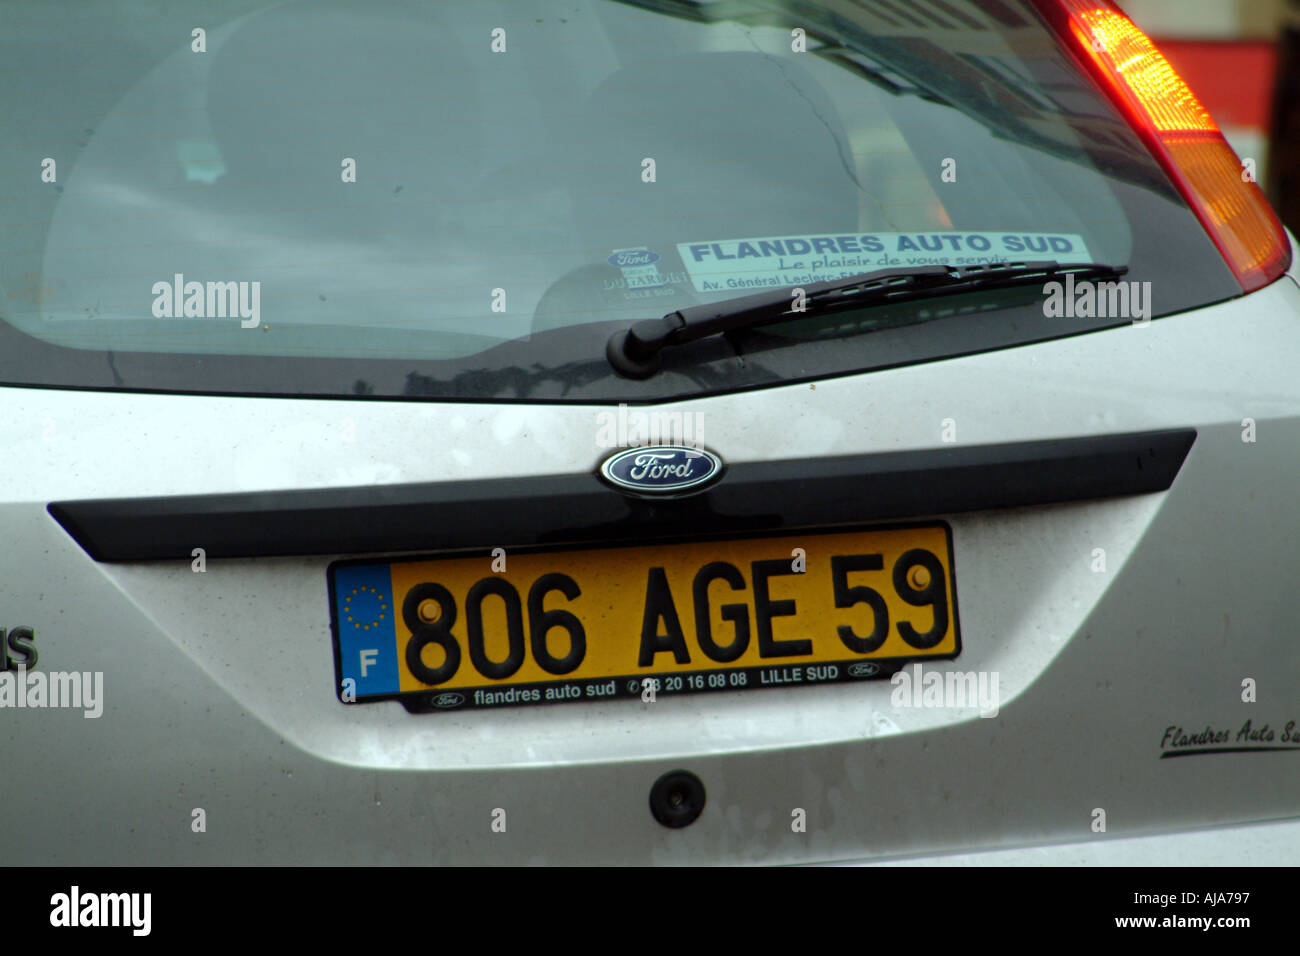 Lille France Europe French Ford Car Number Plate Age 59 Stock Photo